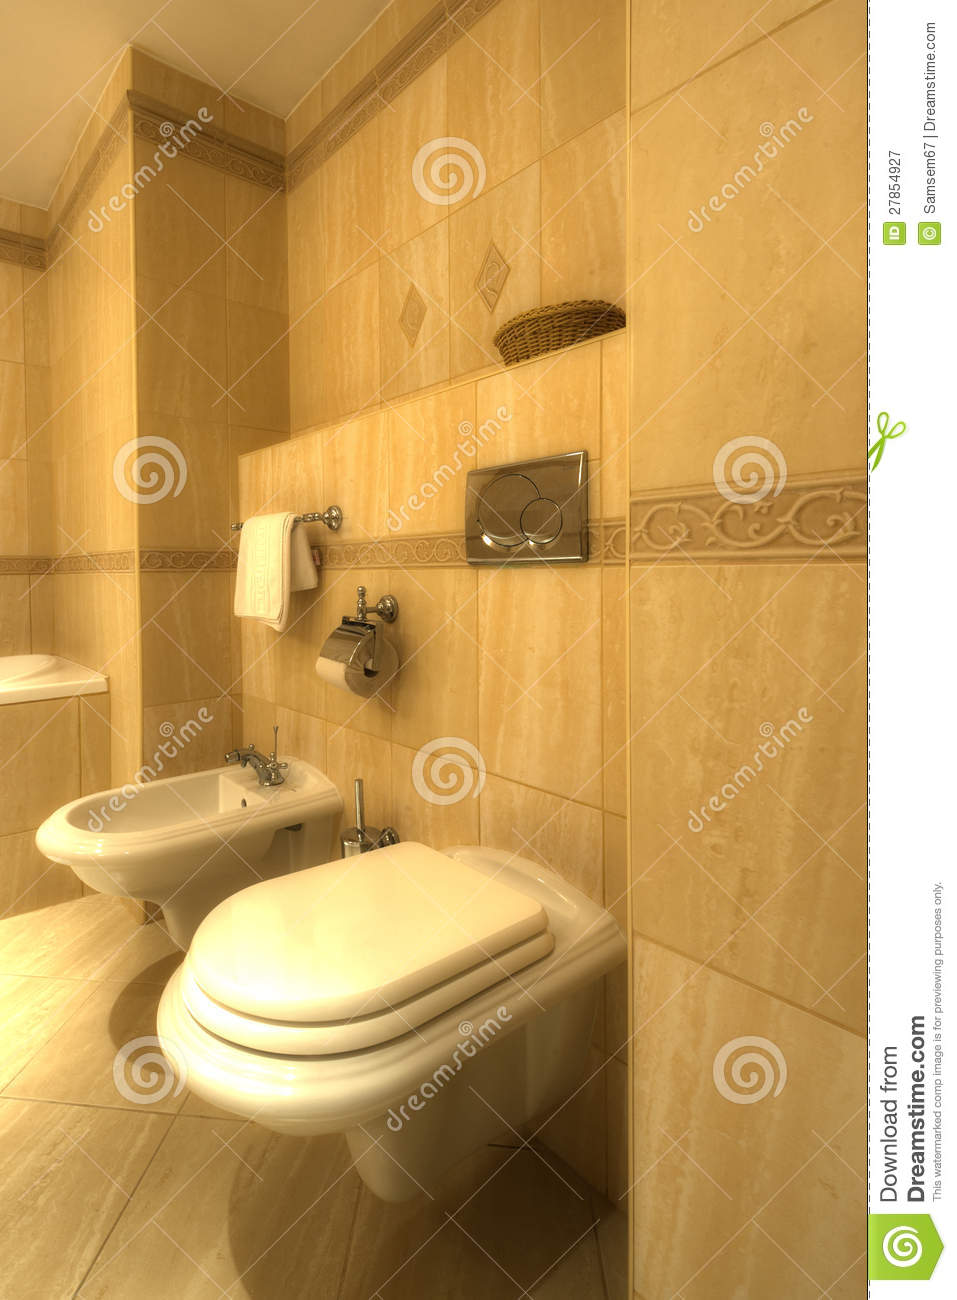 bathroom with bidet and wc royalty free stock photography image 27854927. Black Bedroom Furniture Sets. Home Design Ideas